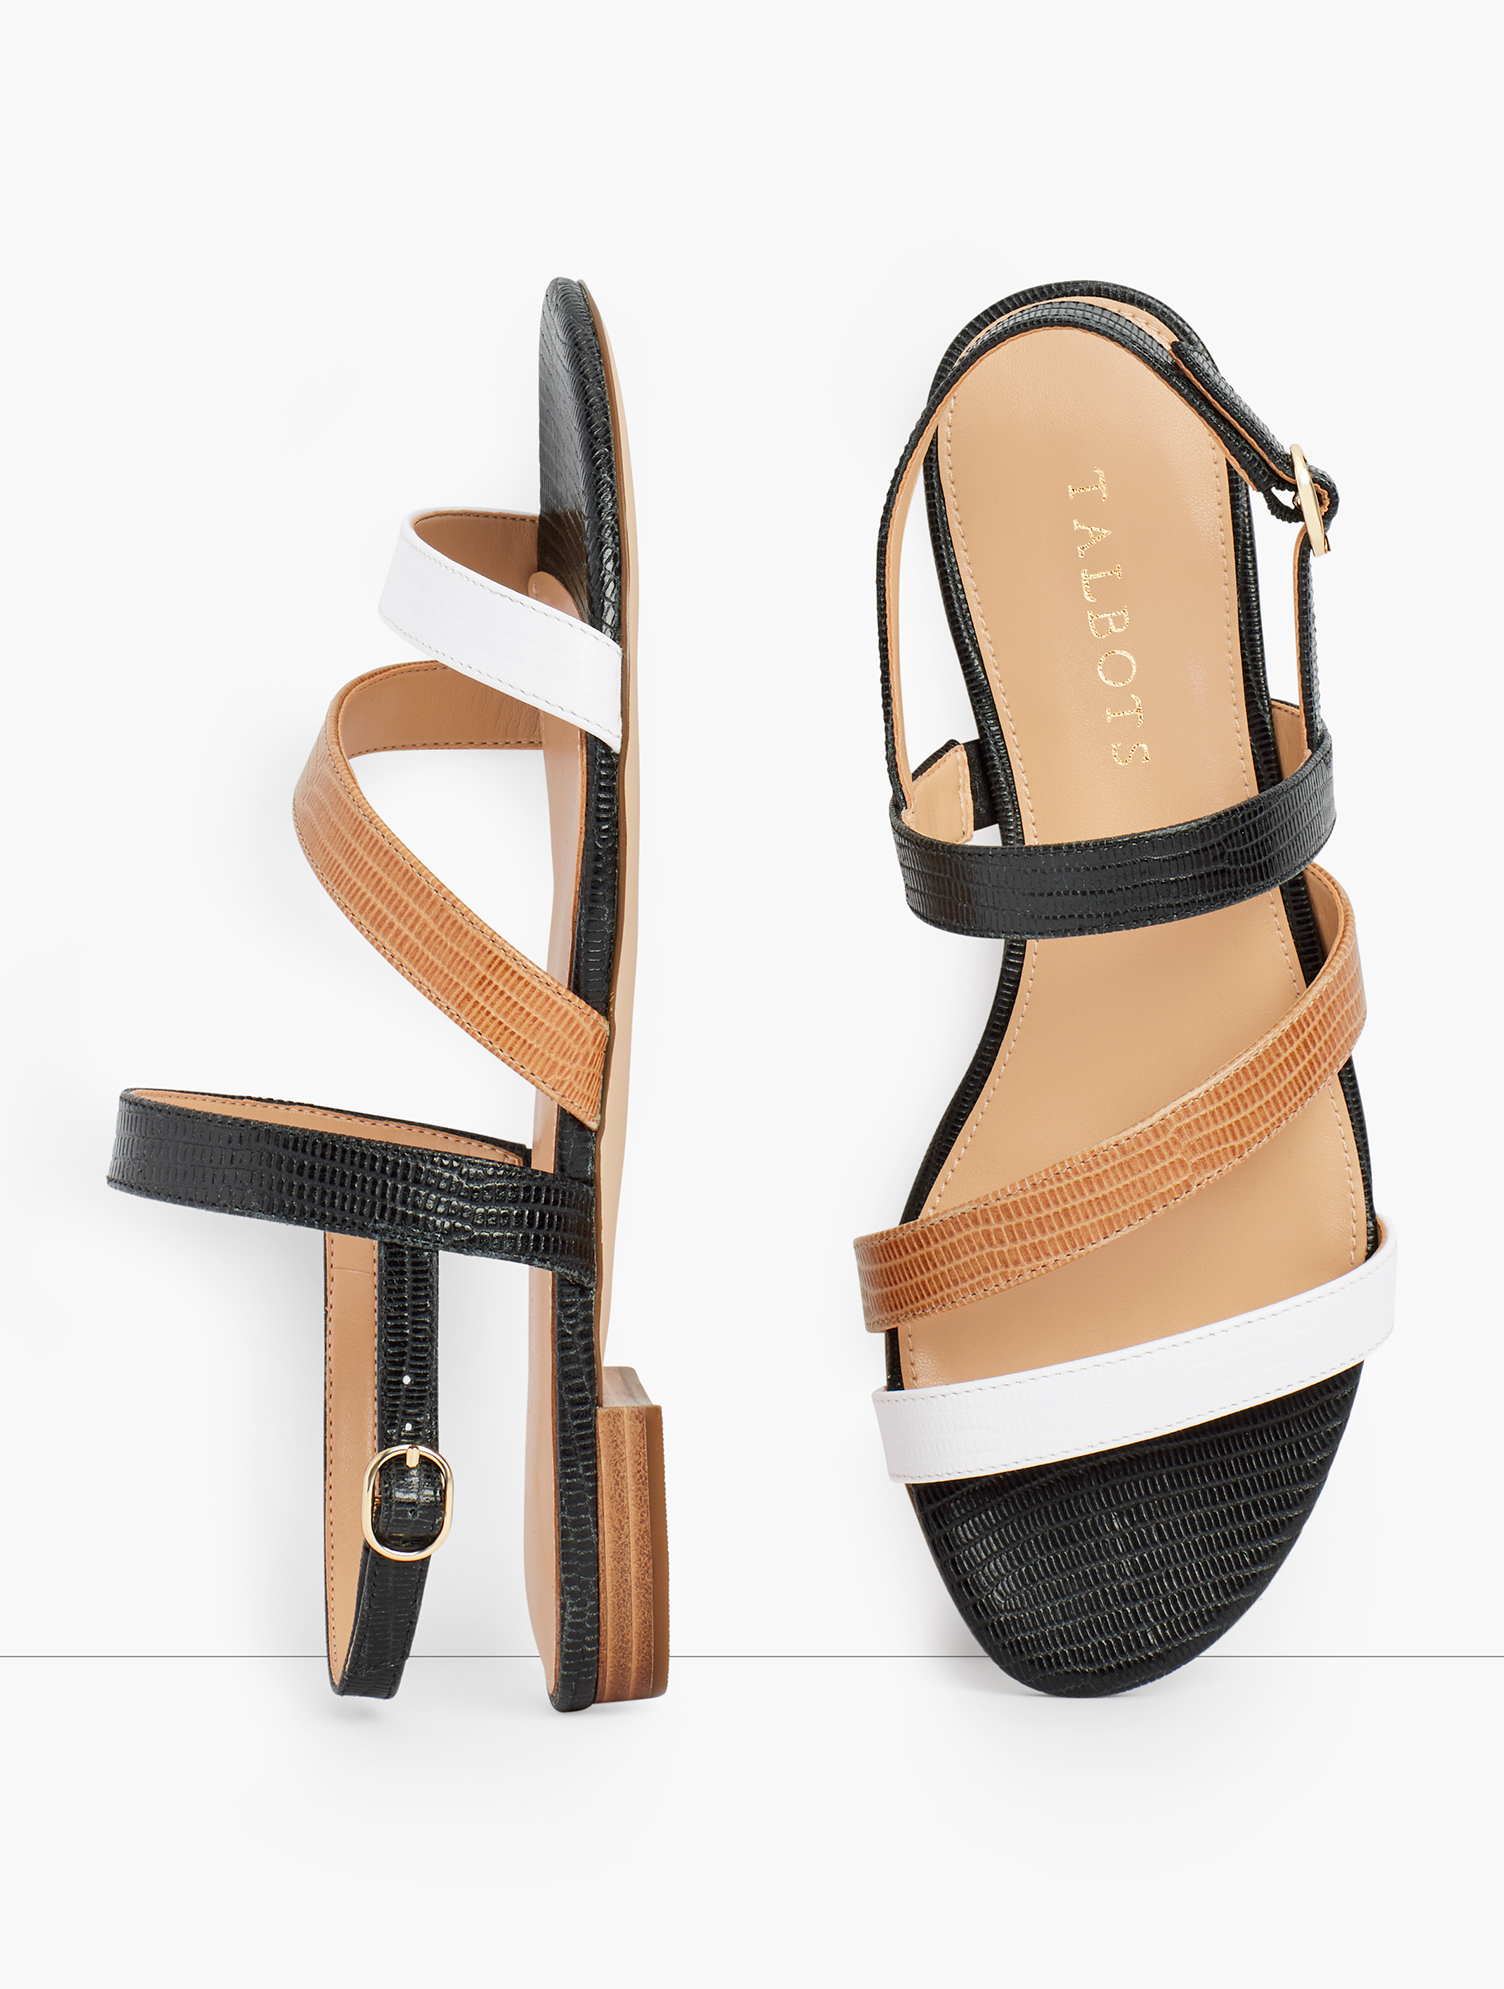 Our Keri Multi Strap Sandals. Ultra chic. Ultra comfortable. With memory foam footbed. Features Gift Box/Gift Wrap is not available for this item 1/2 inches heel Flexible Non Skid Outsole 9k Shiny Gold Hardware 3Mm Memory Foam Footbed Imported Material: 100% Leather Keri Multi Strap Sandals - White Havana Tan/Black - 11M Talbots